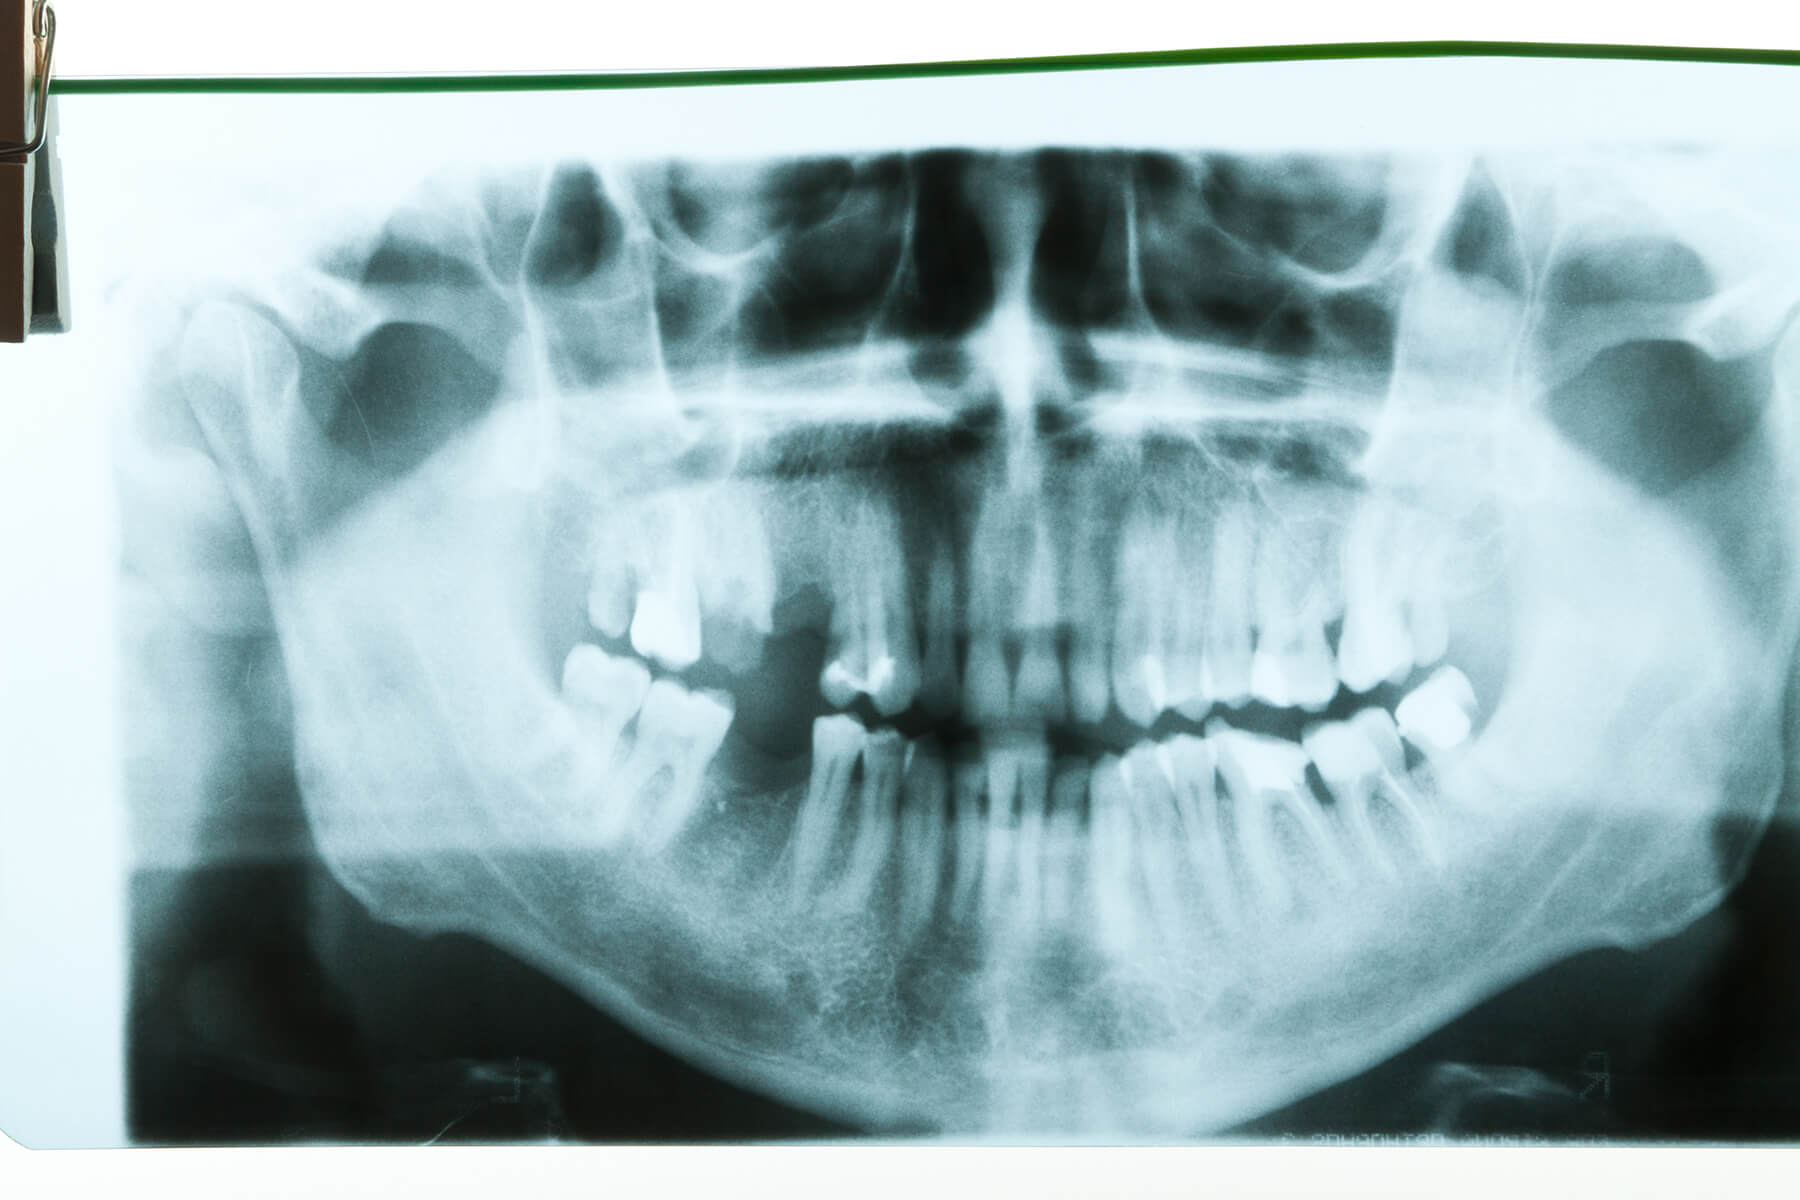 Panoramic dental x-ray of a patient's teeth